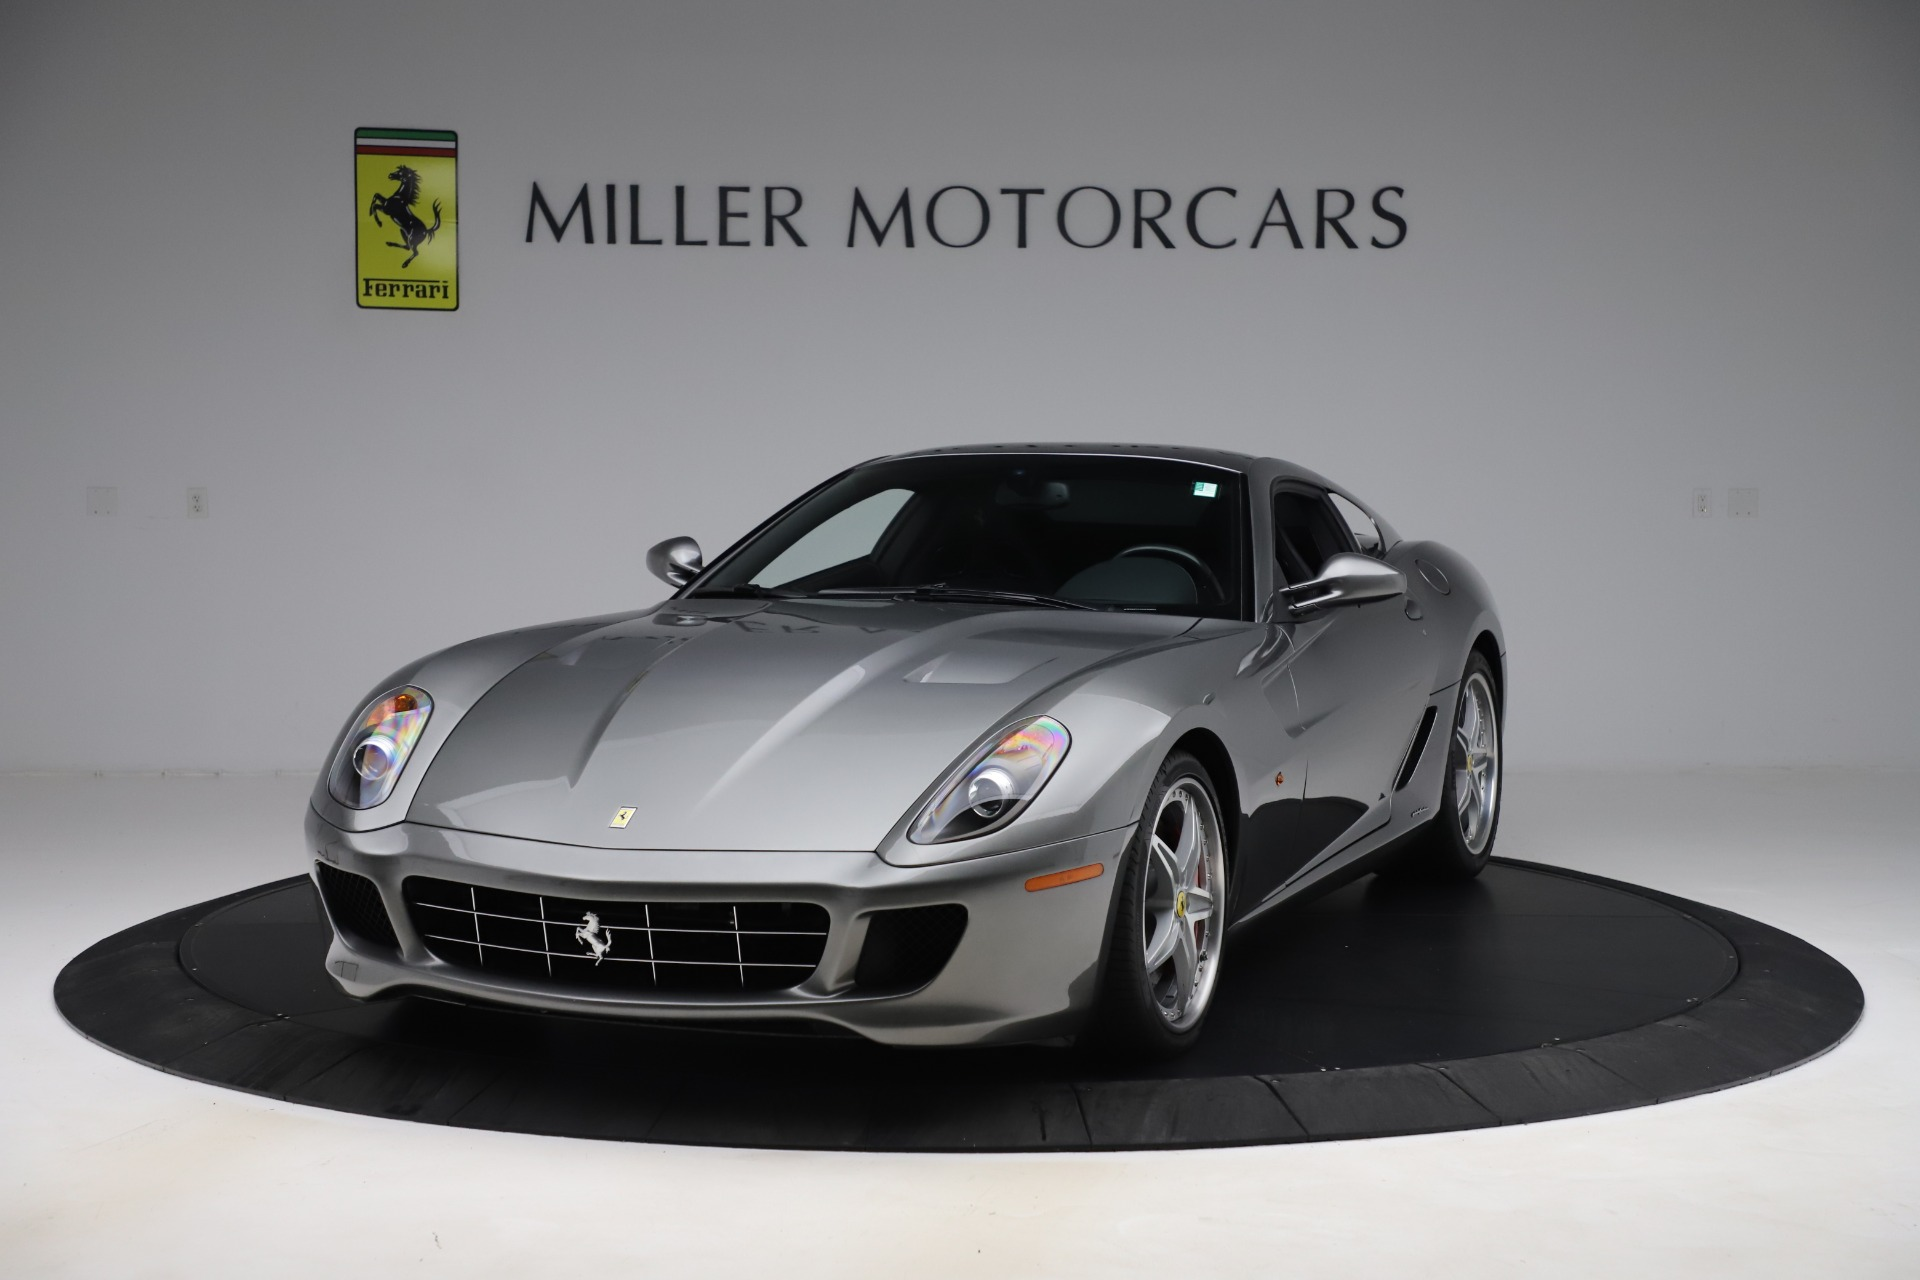 Used 2010 Ferrari 599 GTB Fiorano HGTE for sale Sold at Aston Martin of Greenwich in Greenwich CT 06830 1